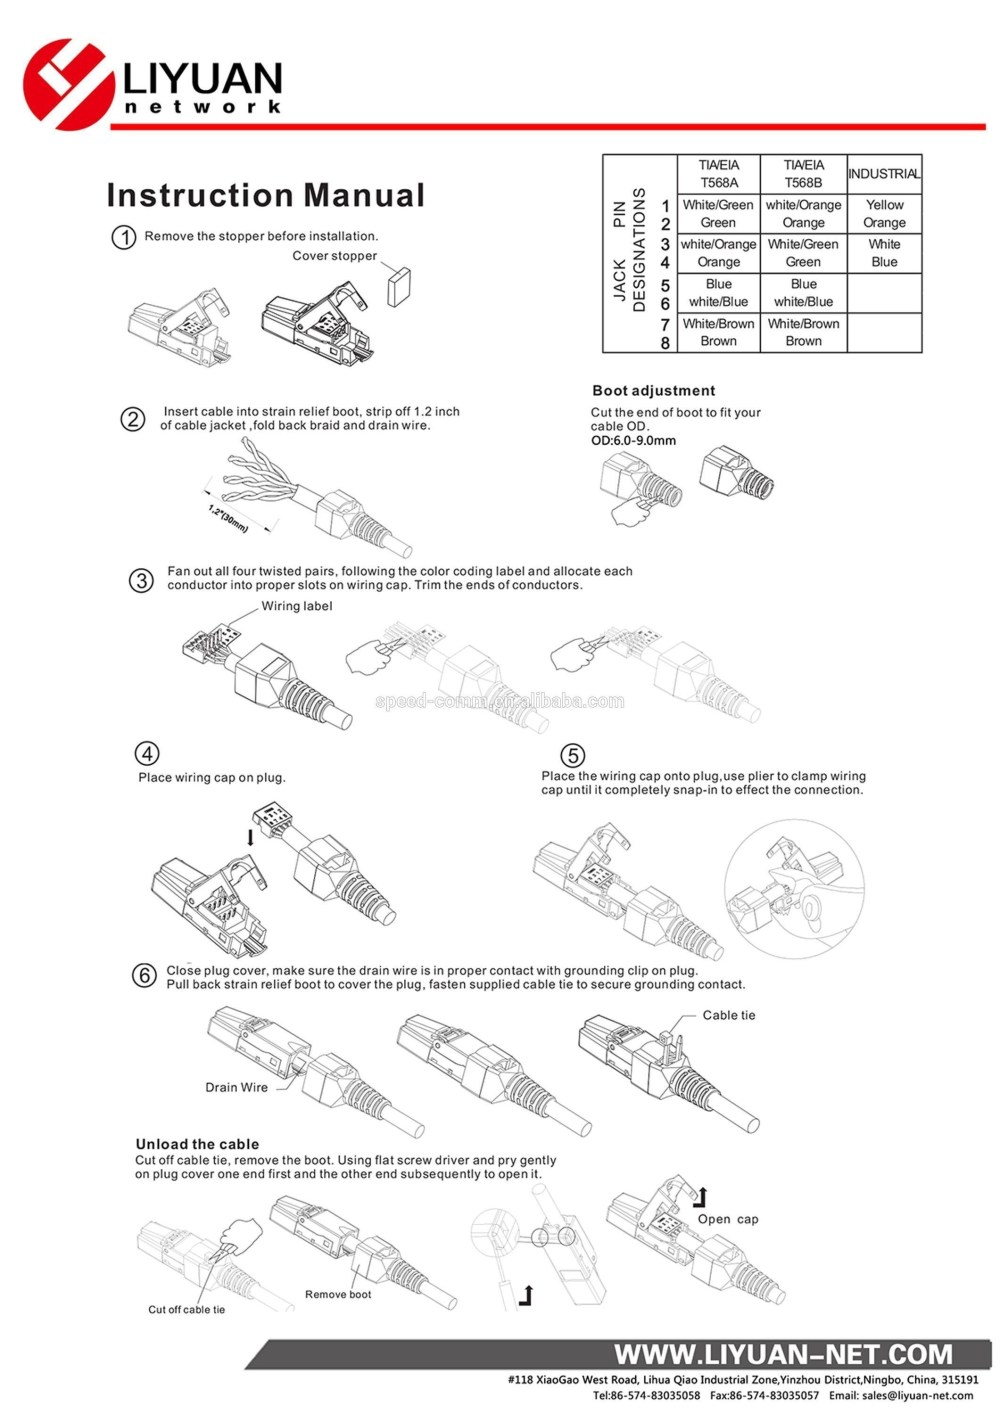 medium resolution of ethernet hub wiring diagram refrence apc usb to rj45 cable pinout rj11 cable wiring diagram rj45